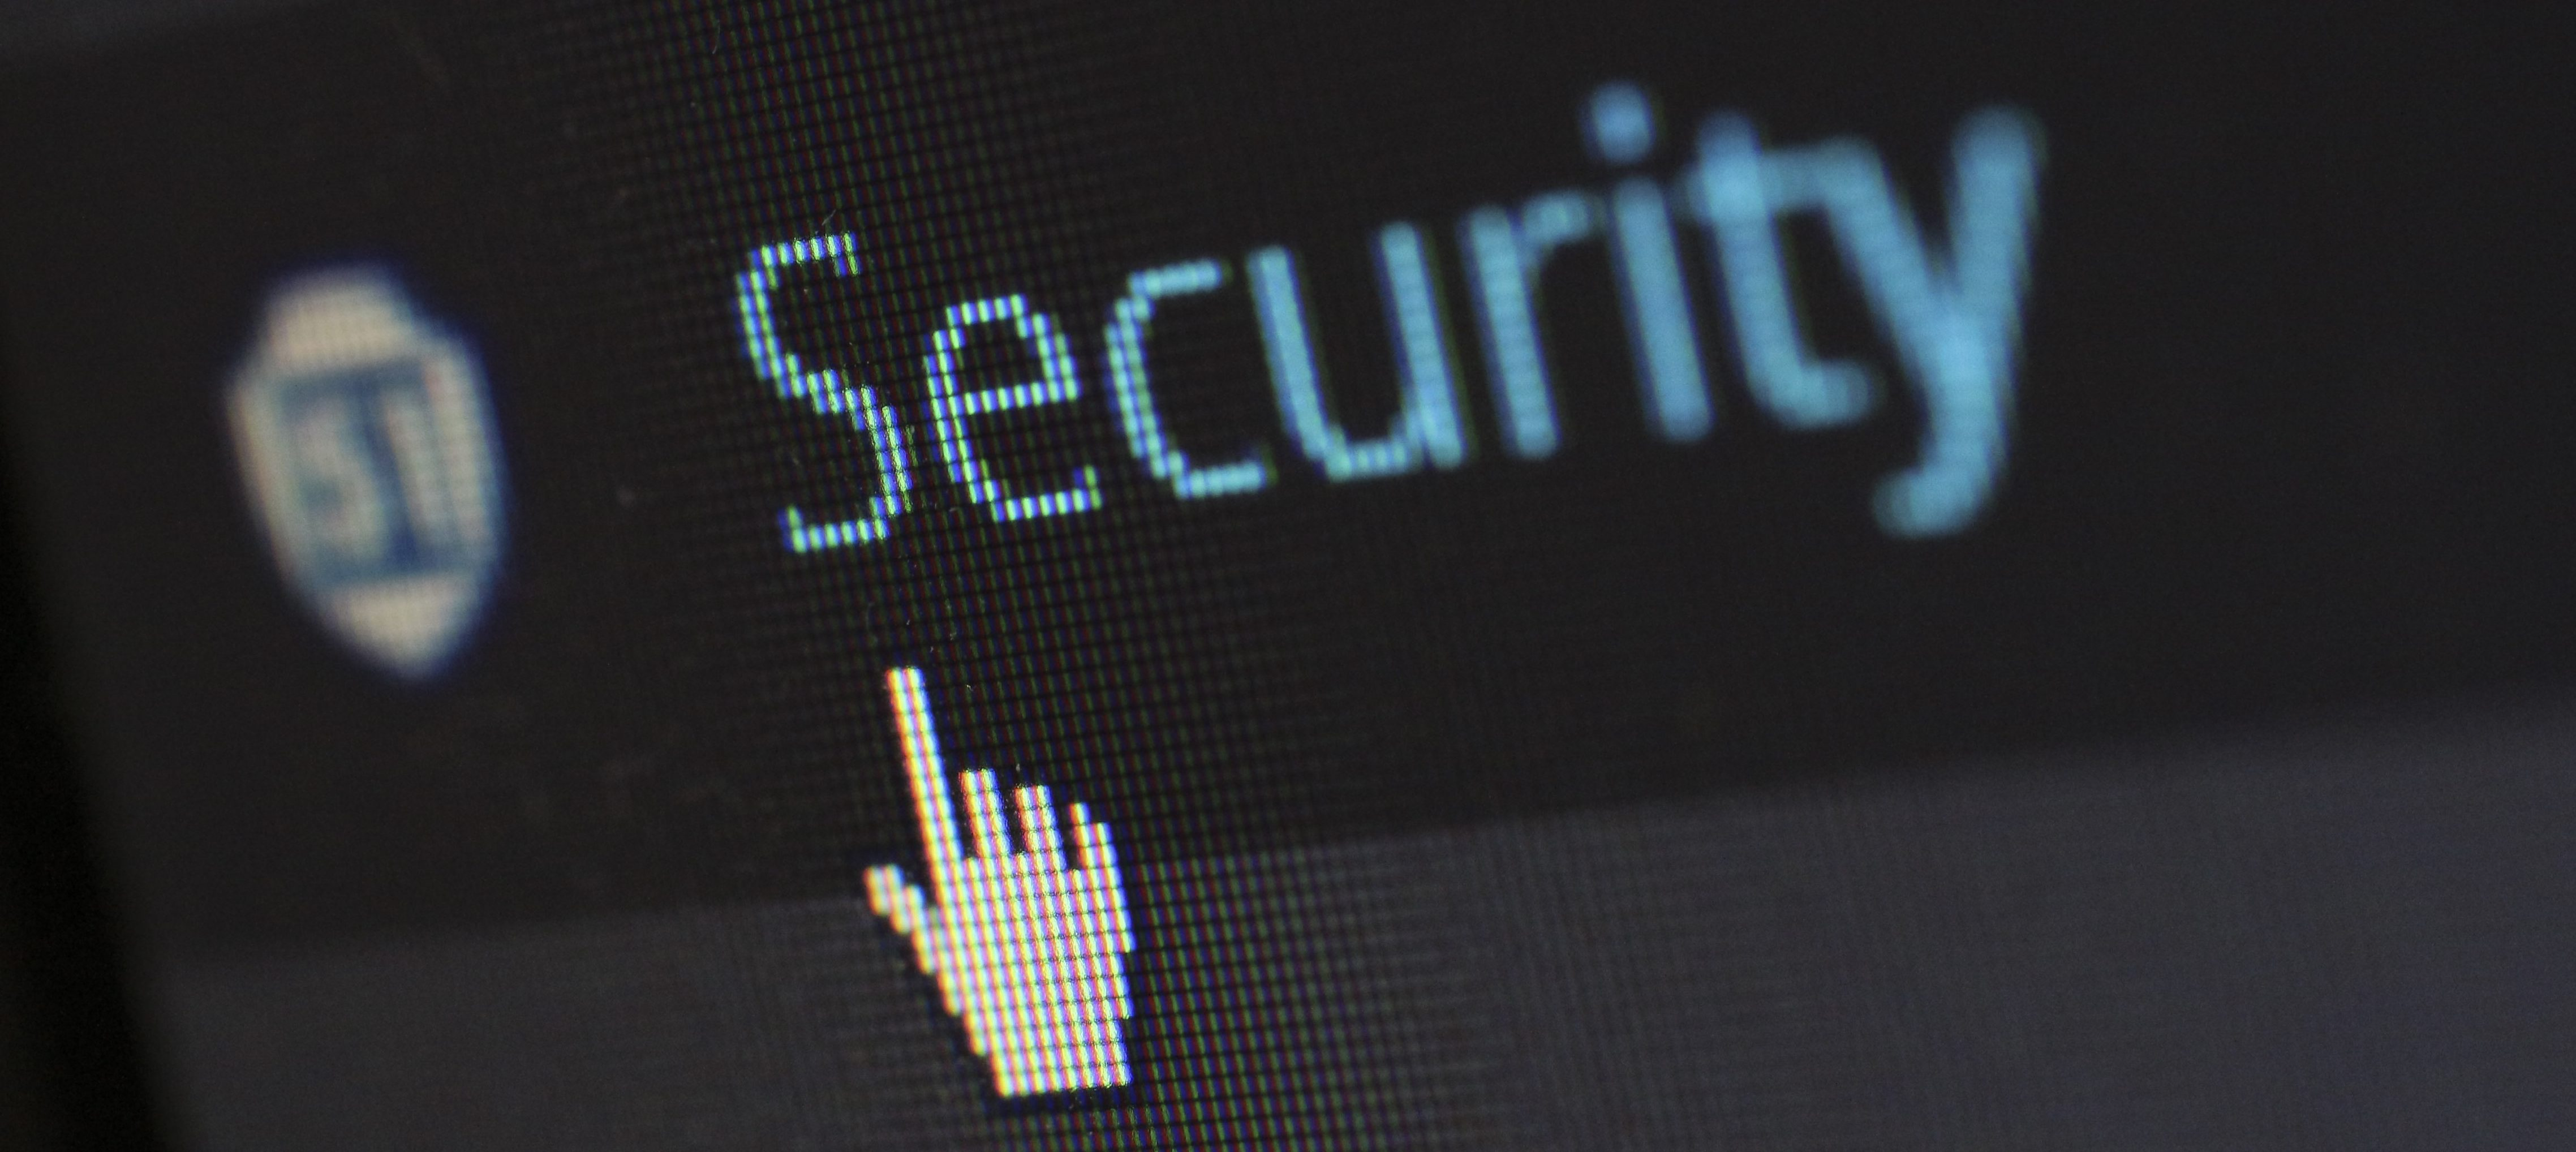 computer screen mouse pointing at the word security